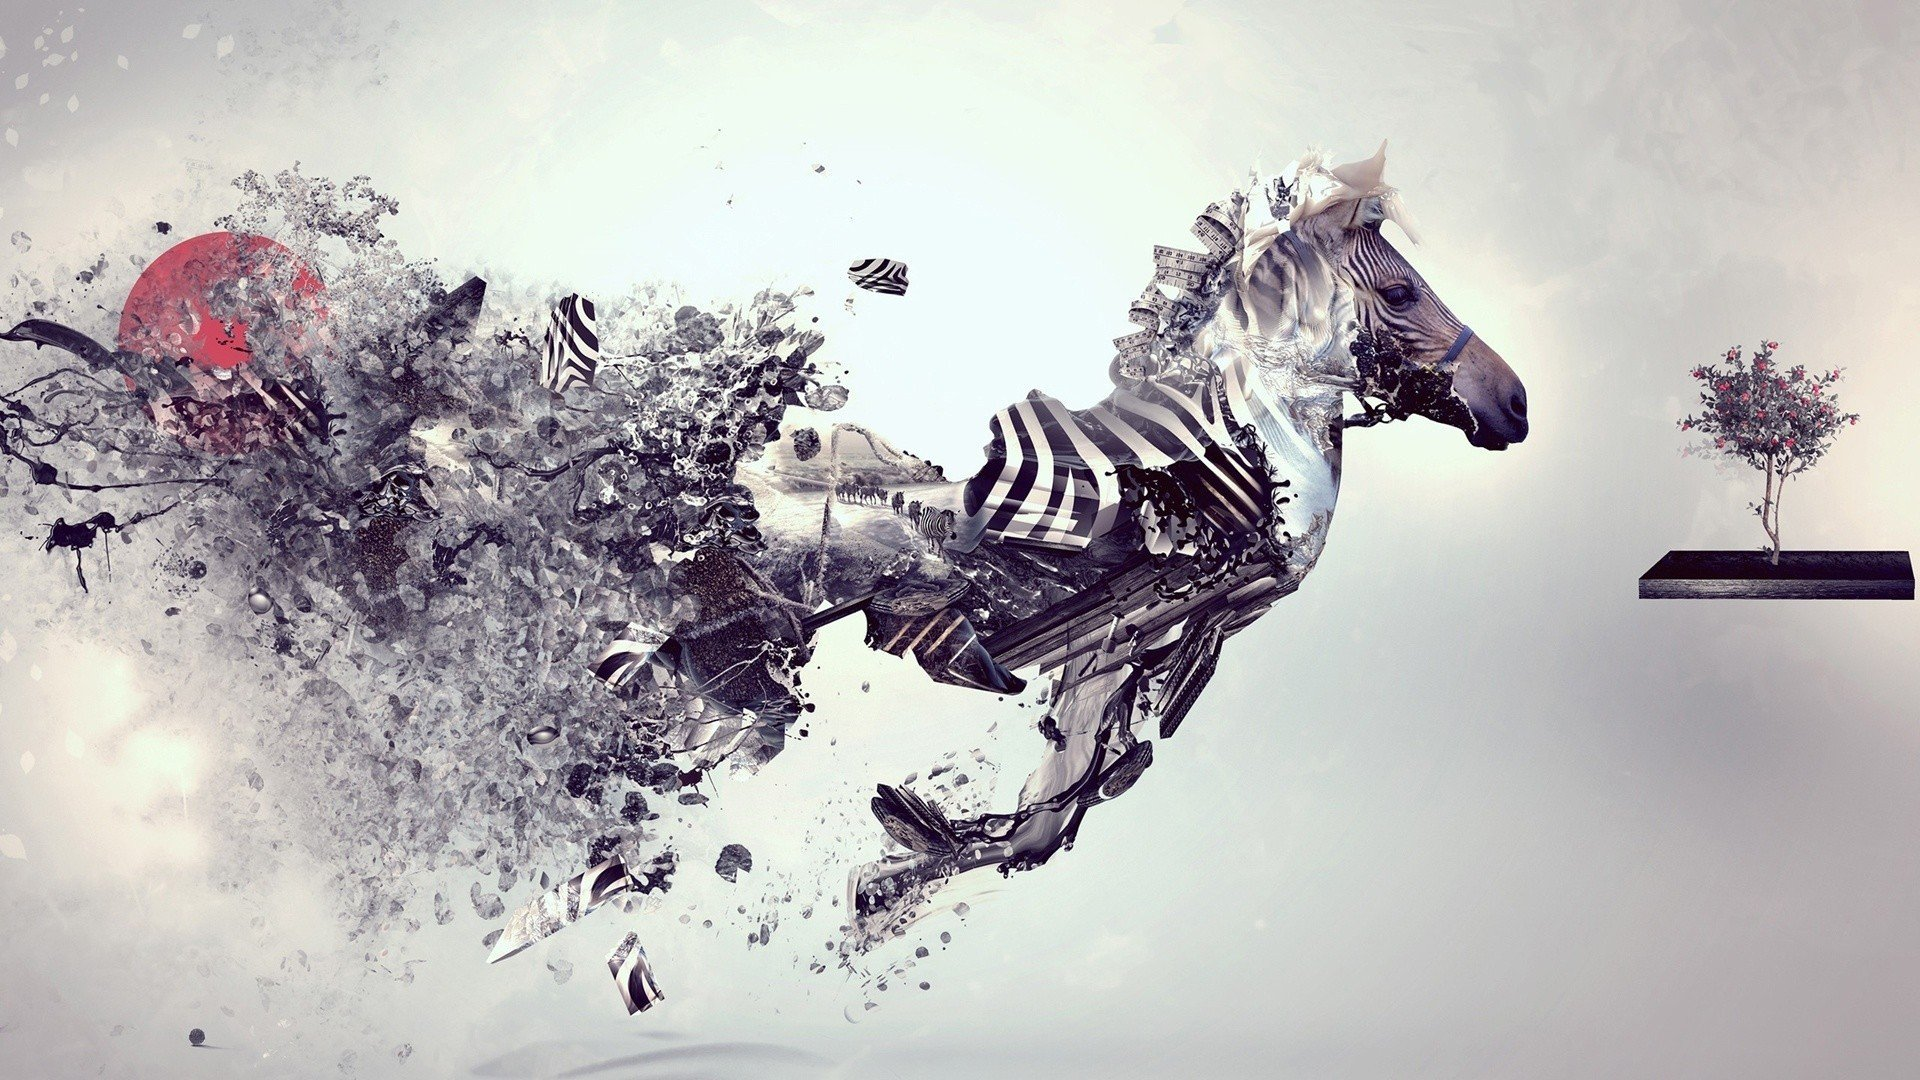 Digital Zebra wallpaper